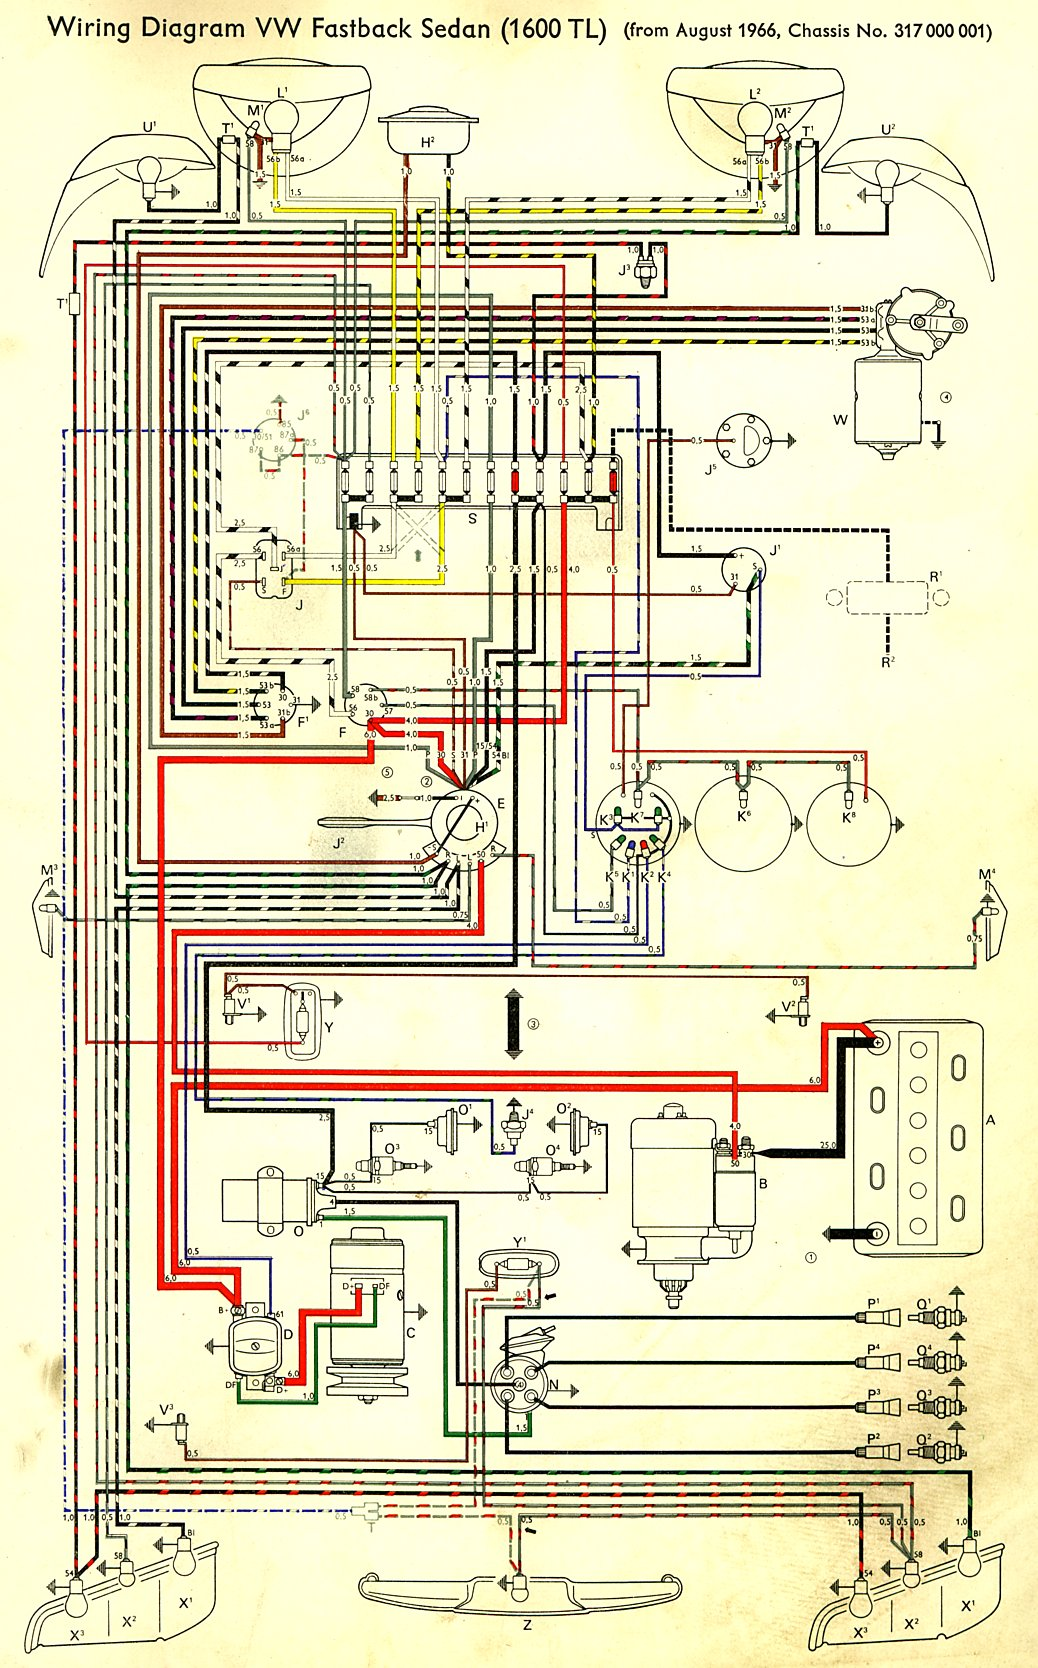 type3_1600TL_67 vw bus wiring diagram 1965 vw bus wiring diagram \u2022 wiring diagrams 1968 volkswagen beetle wiring harness at mifinder.co